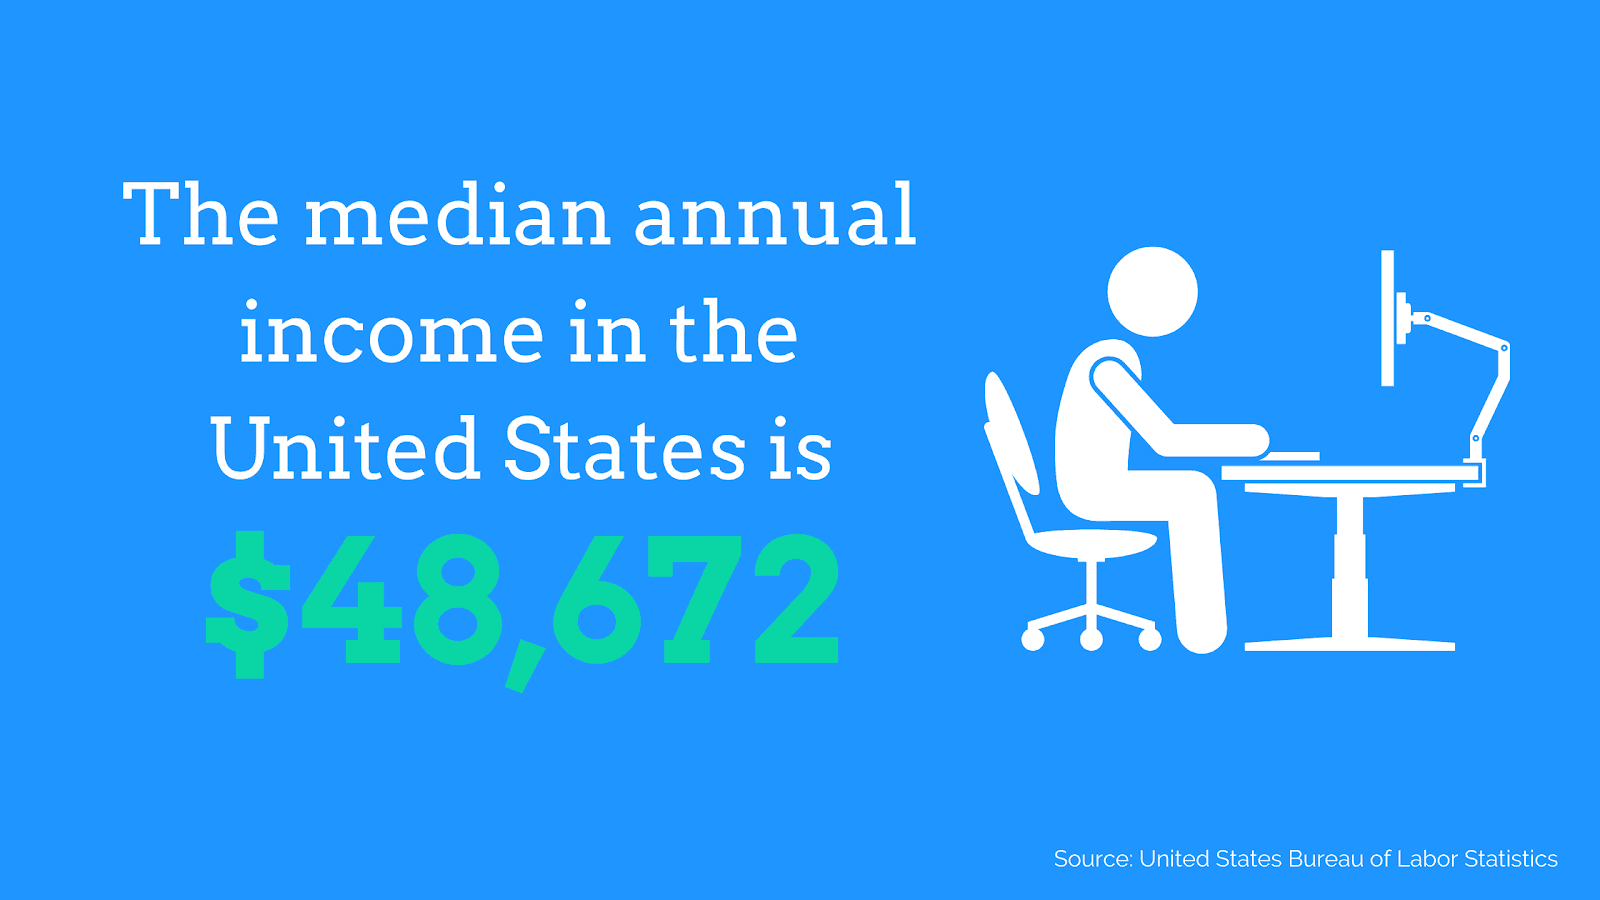 US median annual income